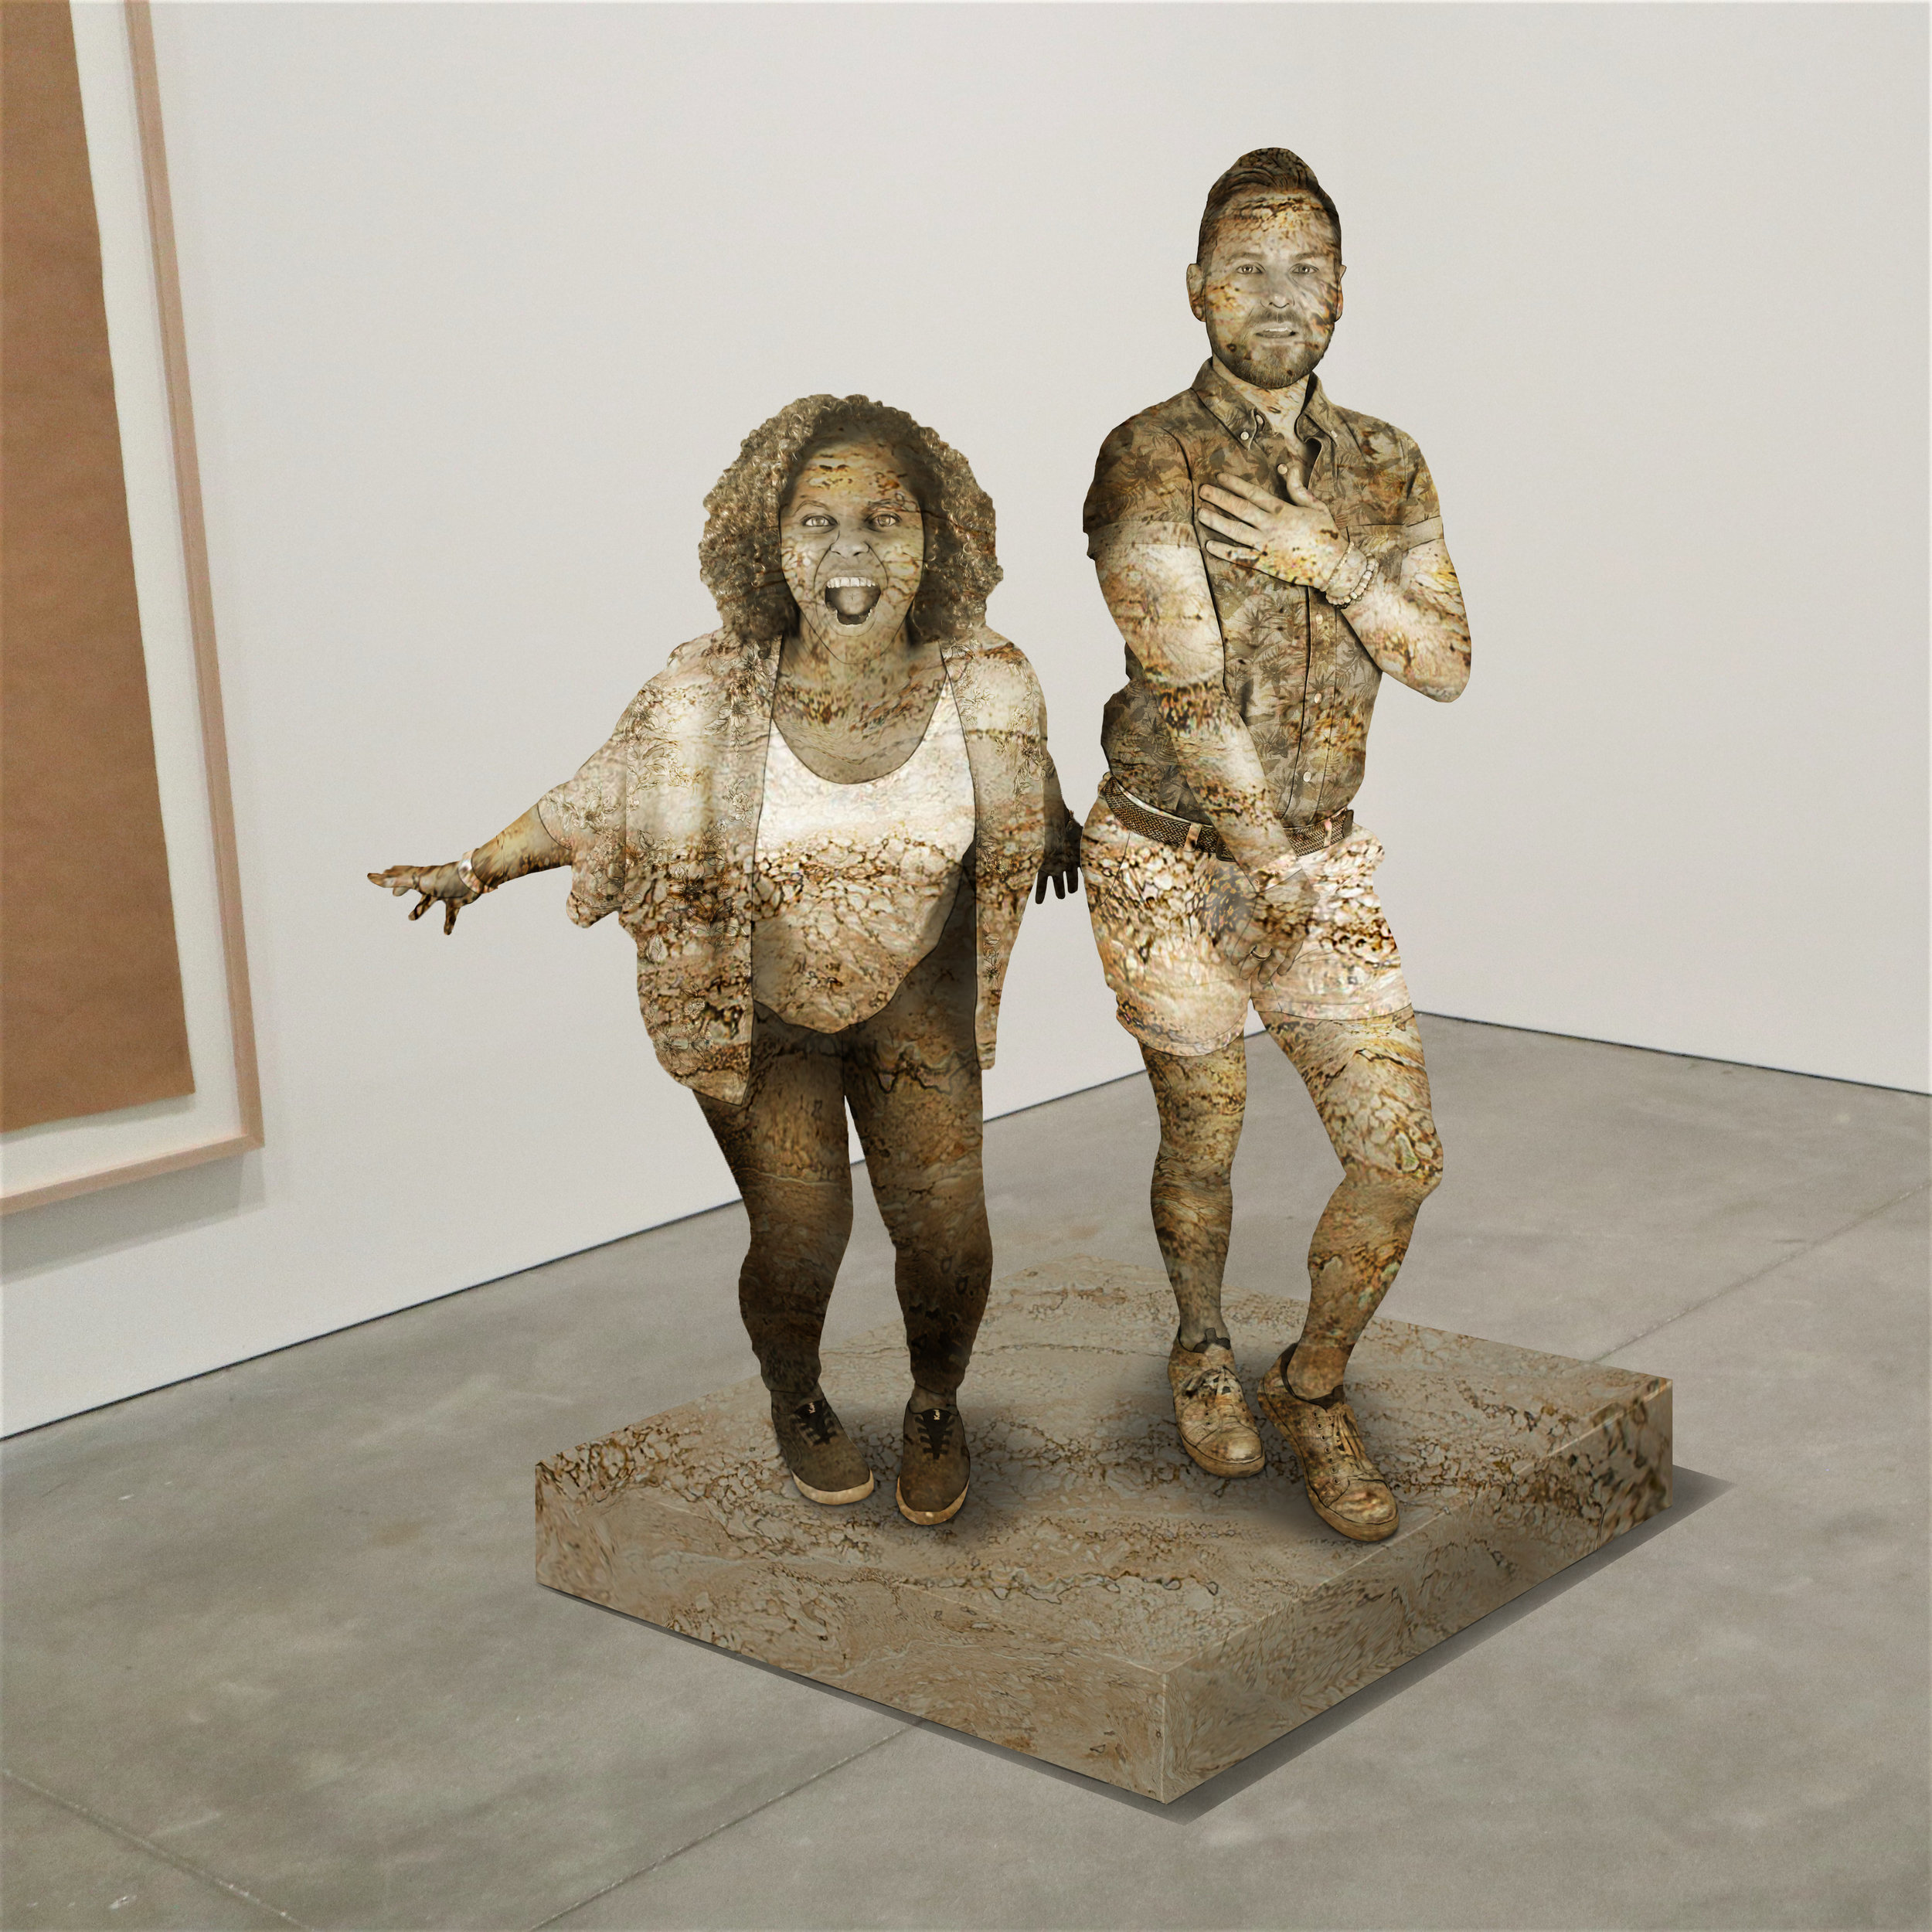 """Venus + Mars,"" travertine, Institute of Contemporary Art, Boston   2018  JPG  During an installation at the Institute of Contemporary Art in Boston, viewers were invited to imagine themselves as statues in the ICA's permanent collection. Participants were photographed posing as a statue they felt represented themselves, created a name for their fictional statue, and selected a stone from which their statue would be made. Professional and amateur digital artists were commissioned to create renderings of the statues, which were superimposed on photos of the ICA's permanent collection gallery space."